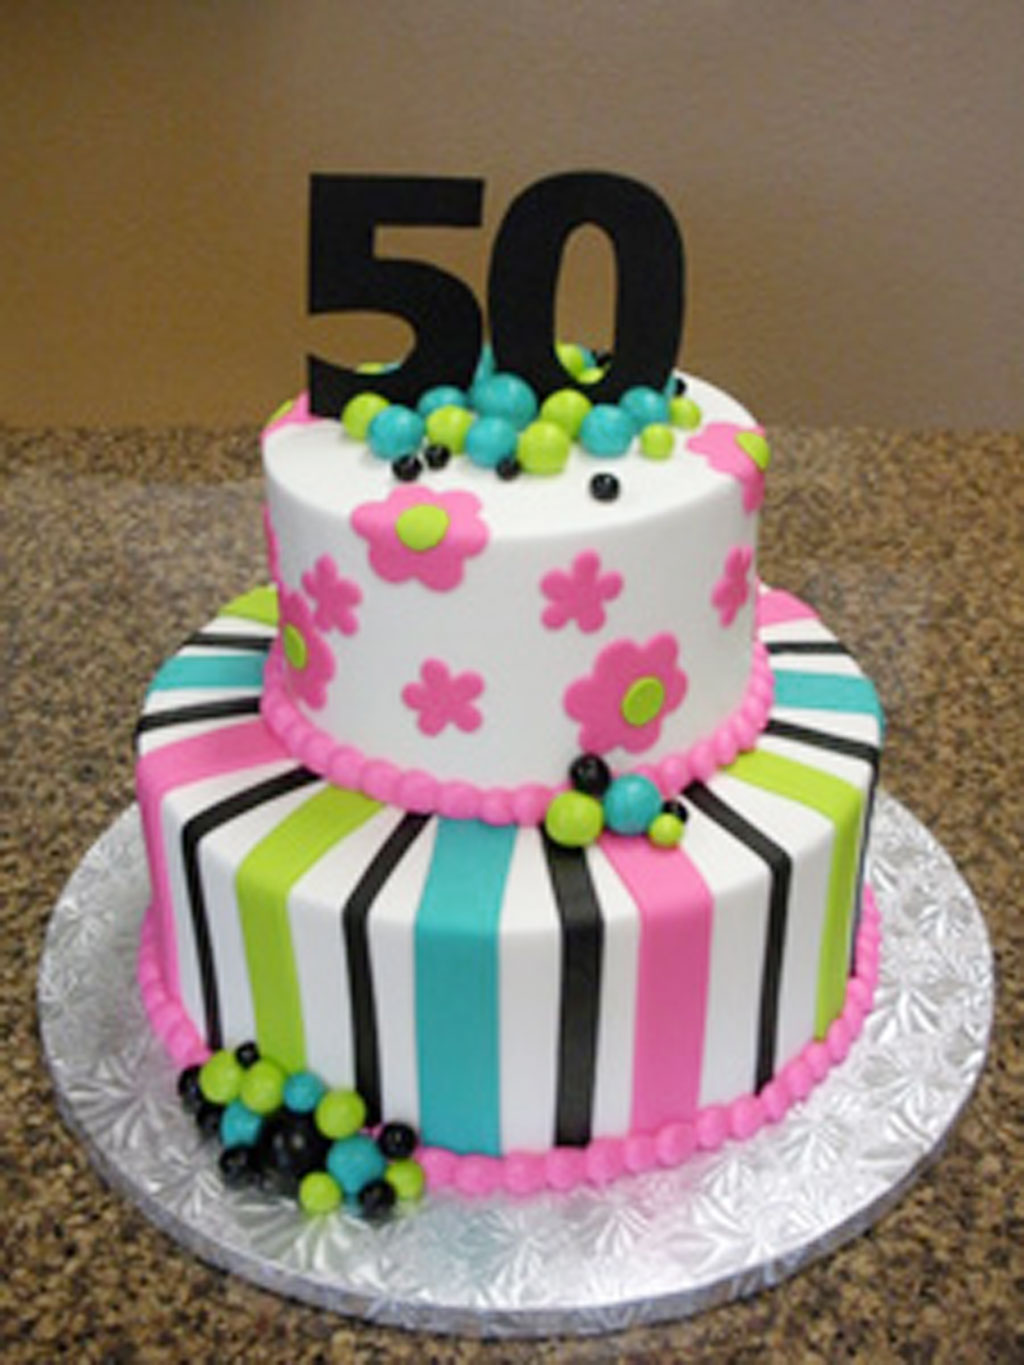 50th Birthday Cakes Pictures For Women Birthday Cake ...